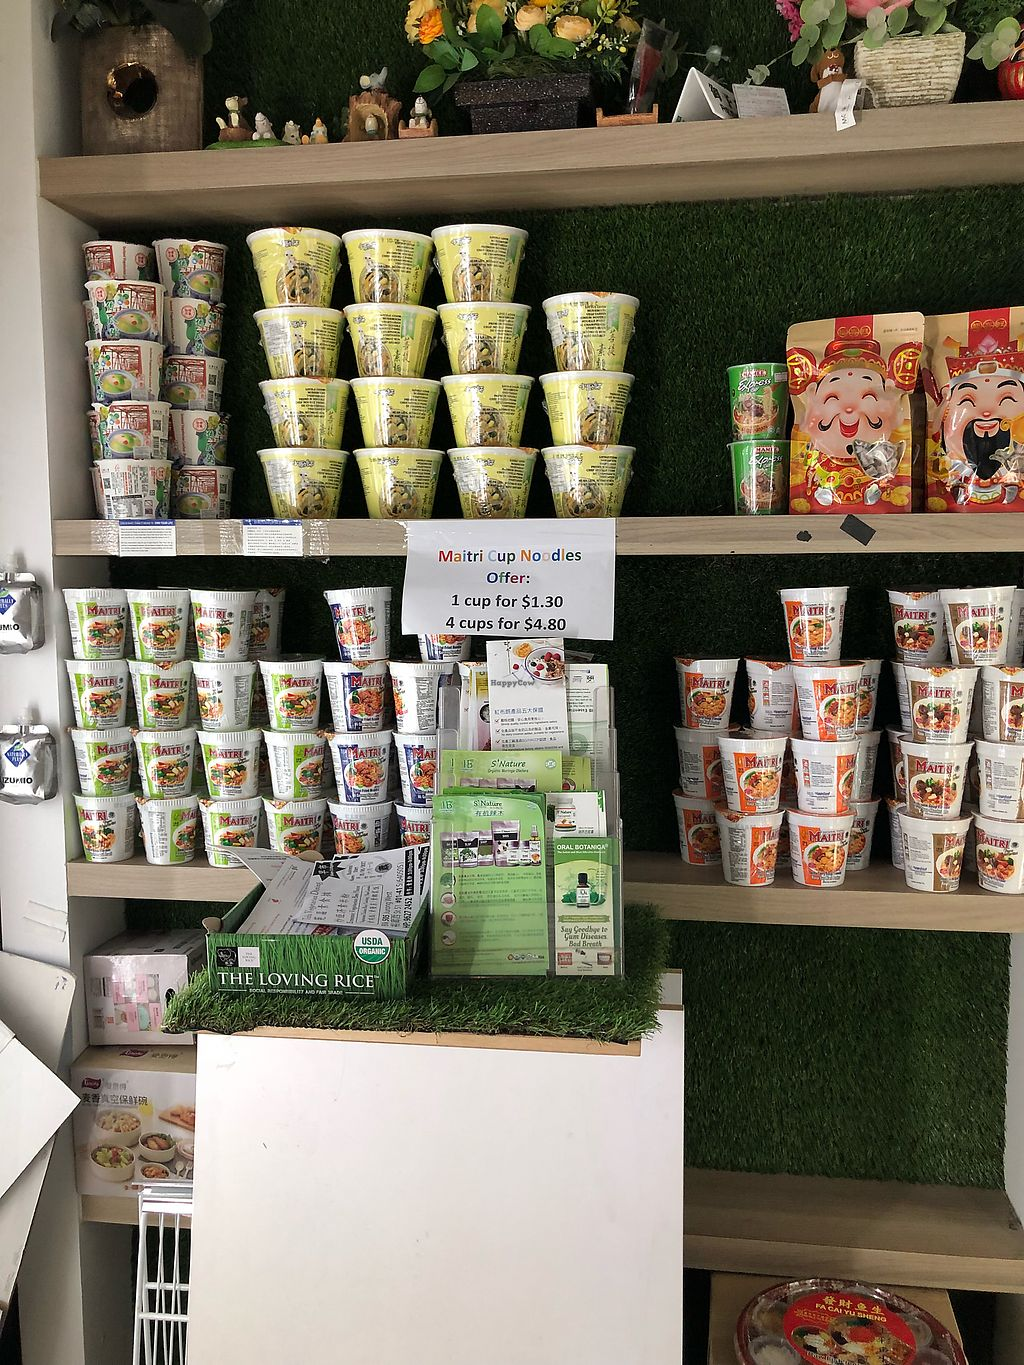 """Photo of New Century Organic  by <a href=""""/members/profile/Starmone"""">Starmone</a> <br/>Cup noodles <br/> February 14, 2018  - <a href='/contact/abuse/image/66331/359230'>Report</a>"""